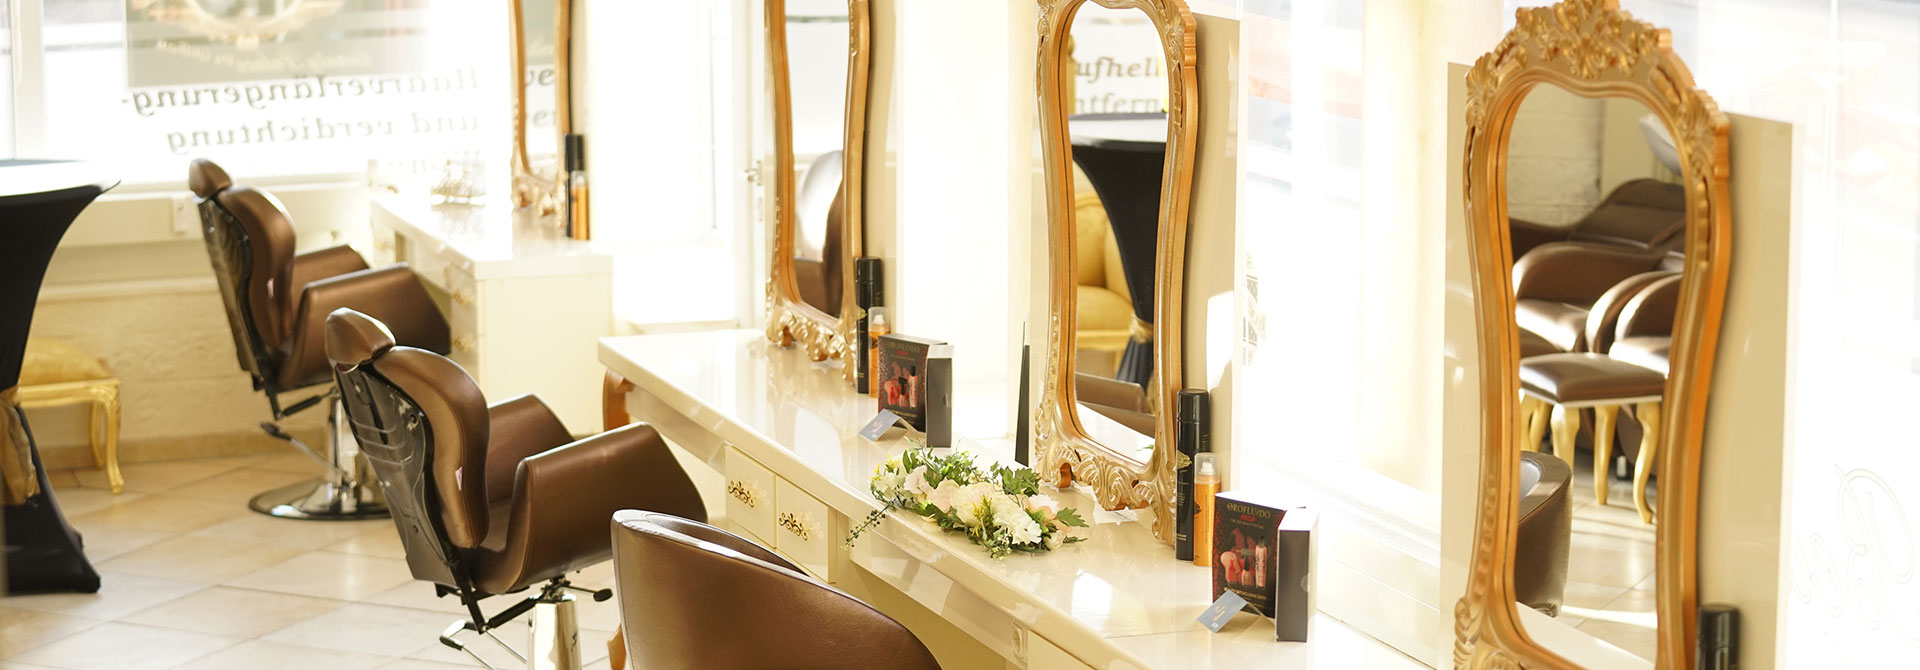 SaHaaRa Beauty Palace: Unser Salon